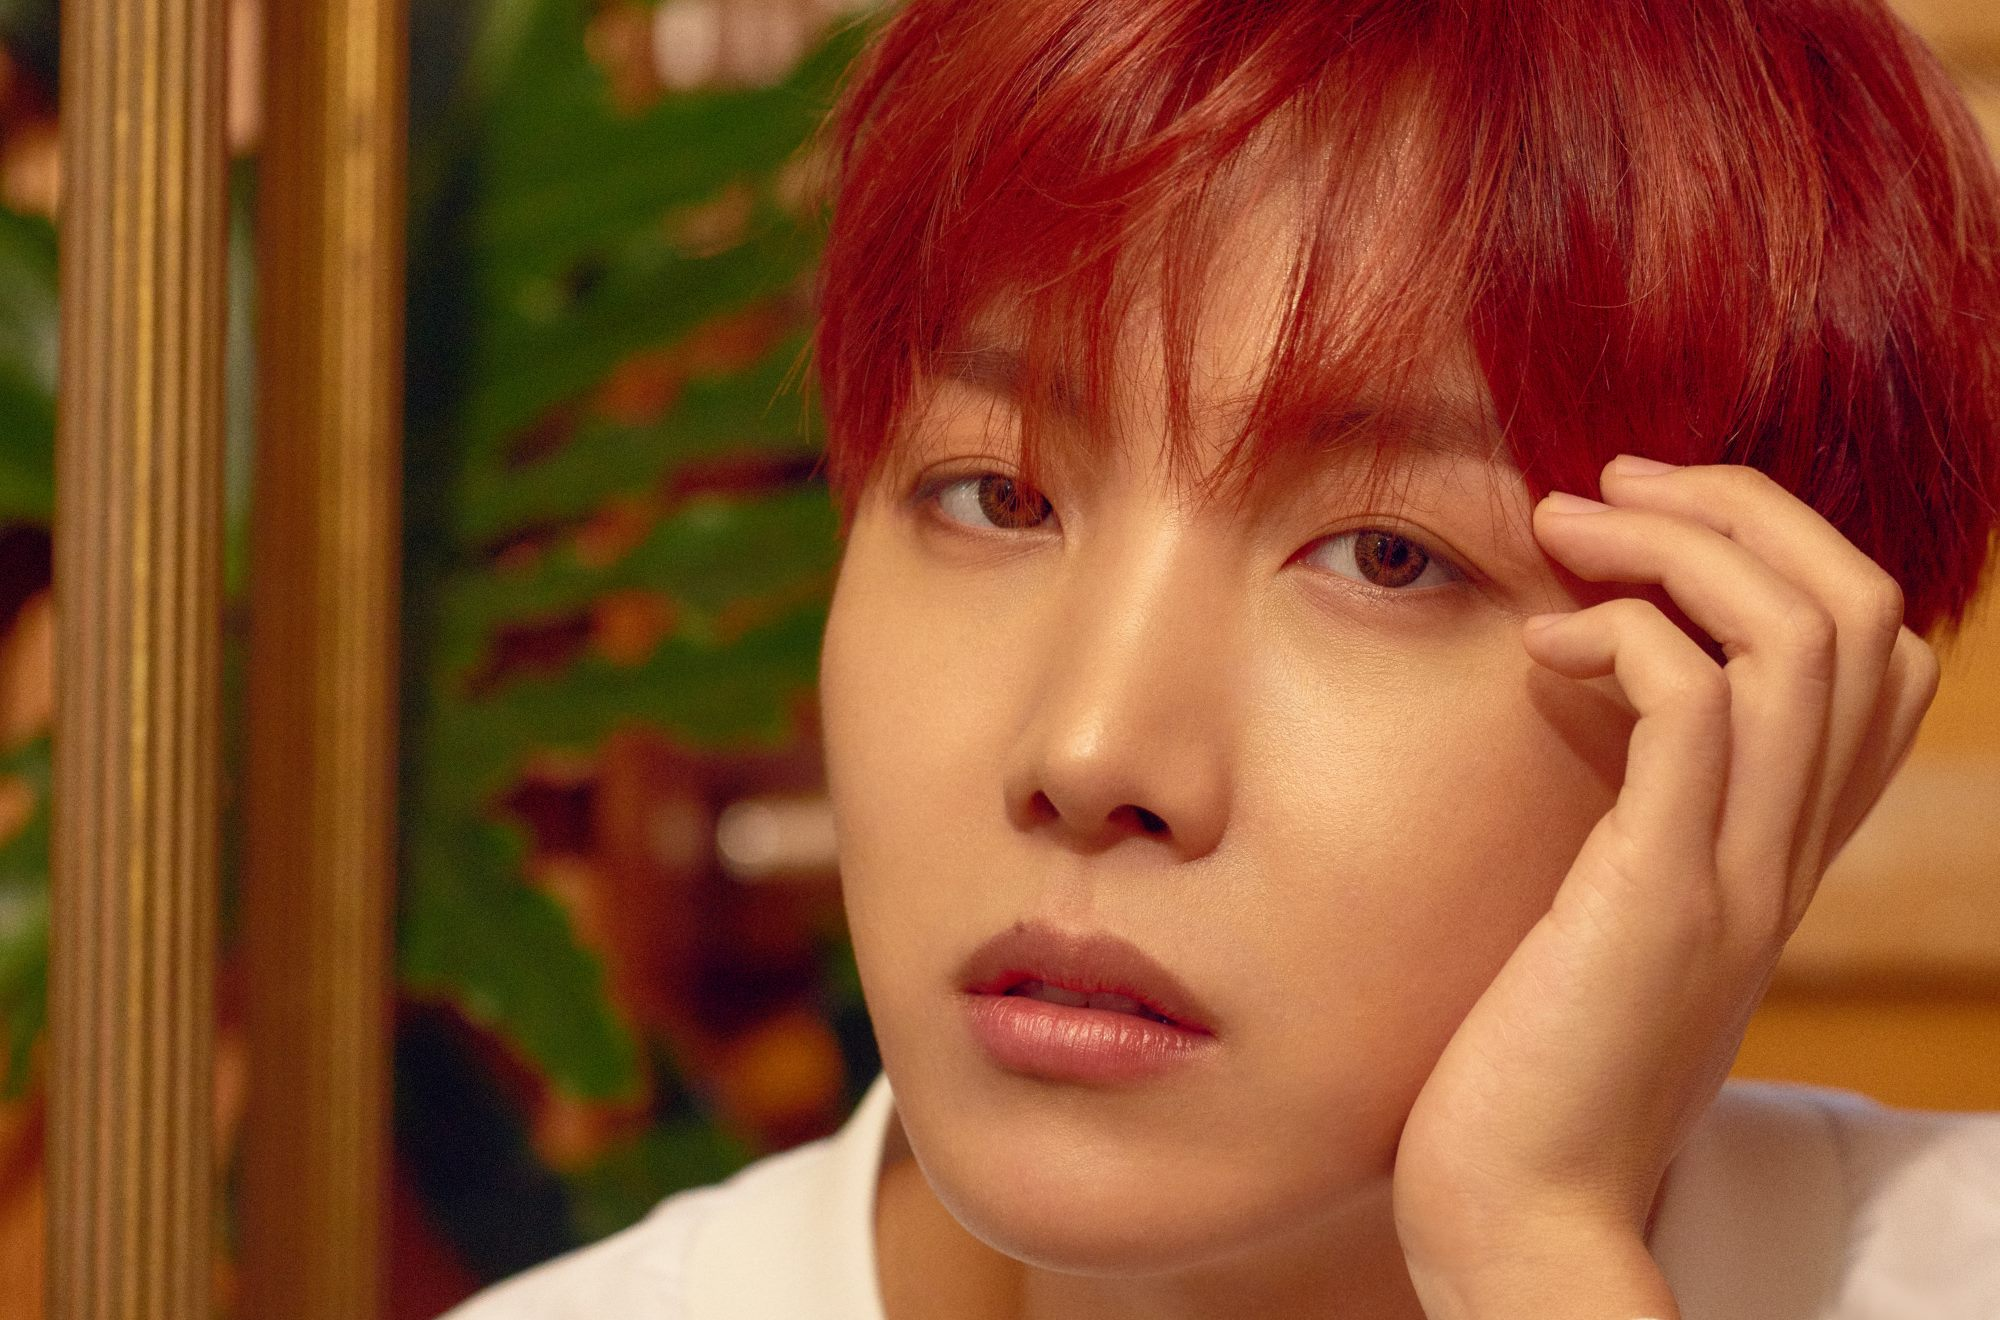 J-Hope Profile